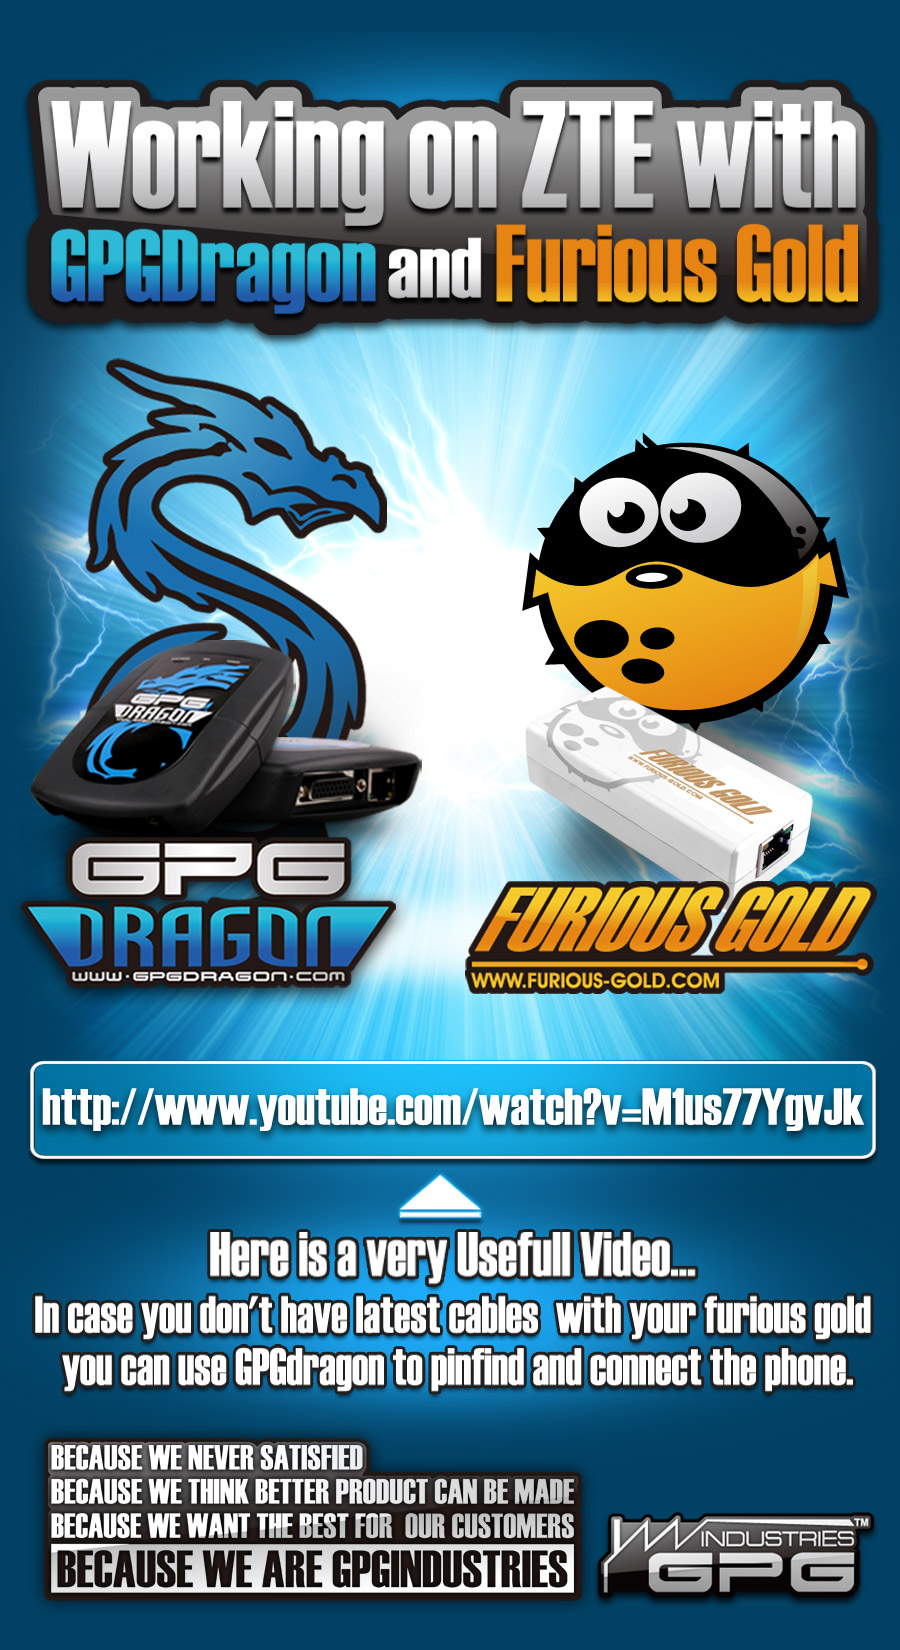 Working on ZTE with GPGDragon and Furious Gold